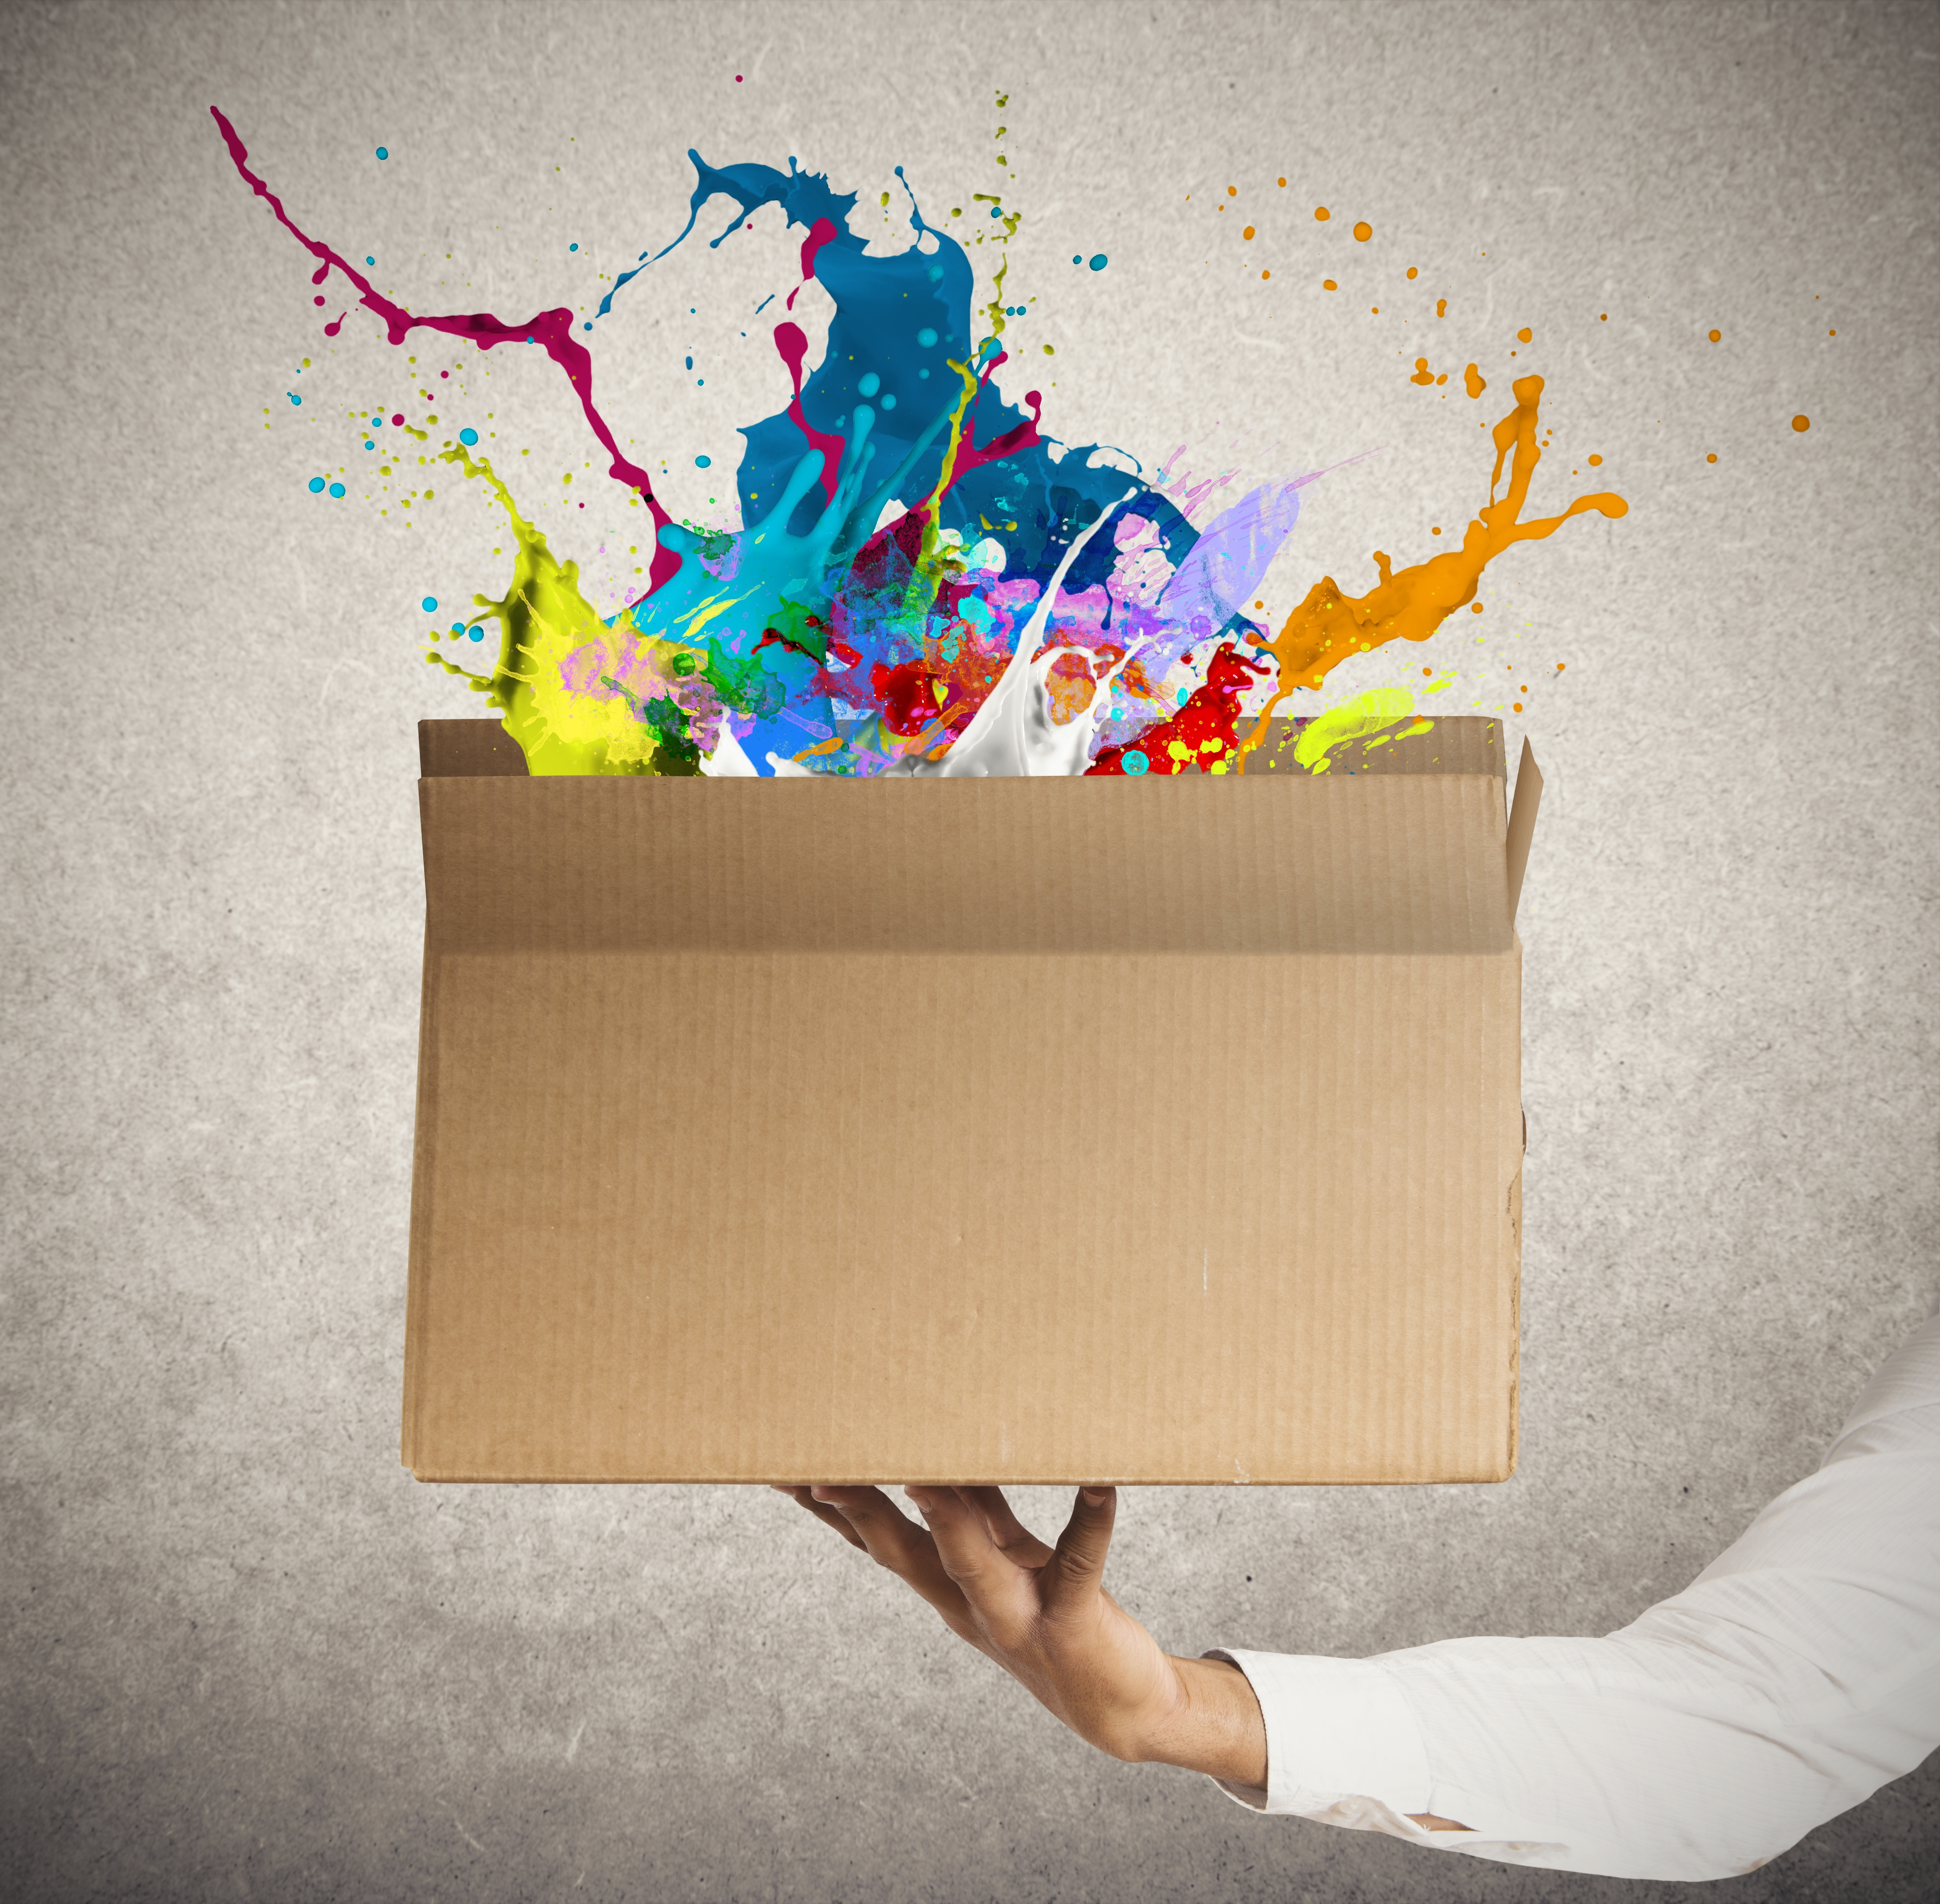 paint-splashing-box.jpg